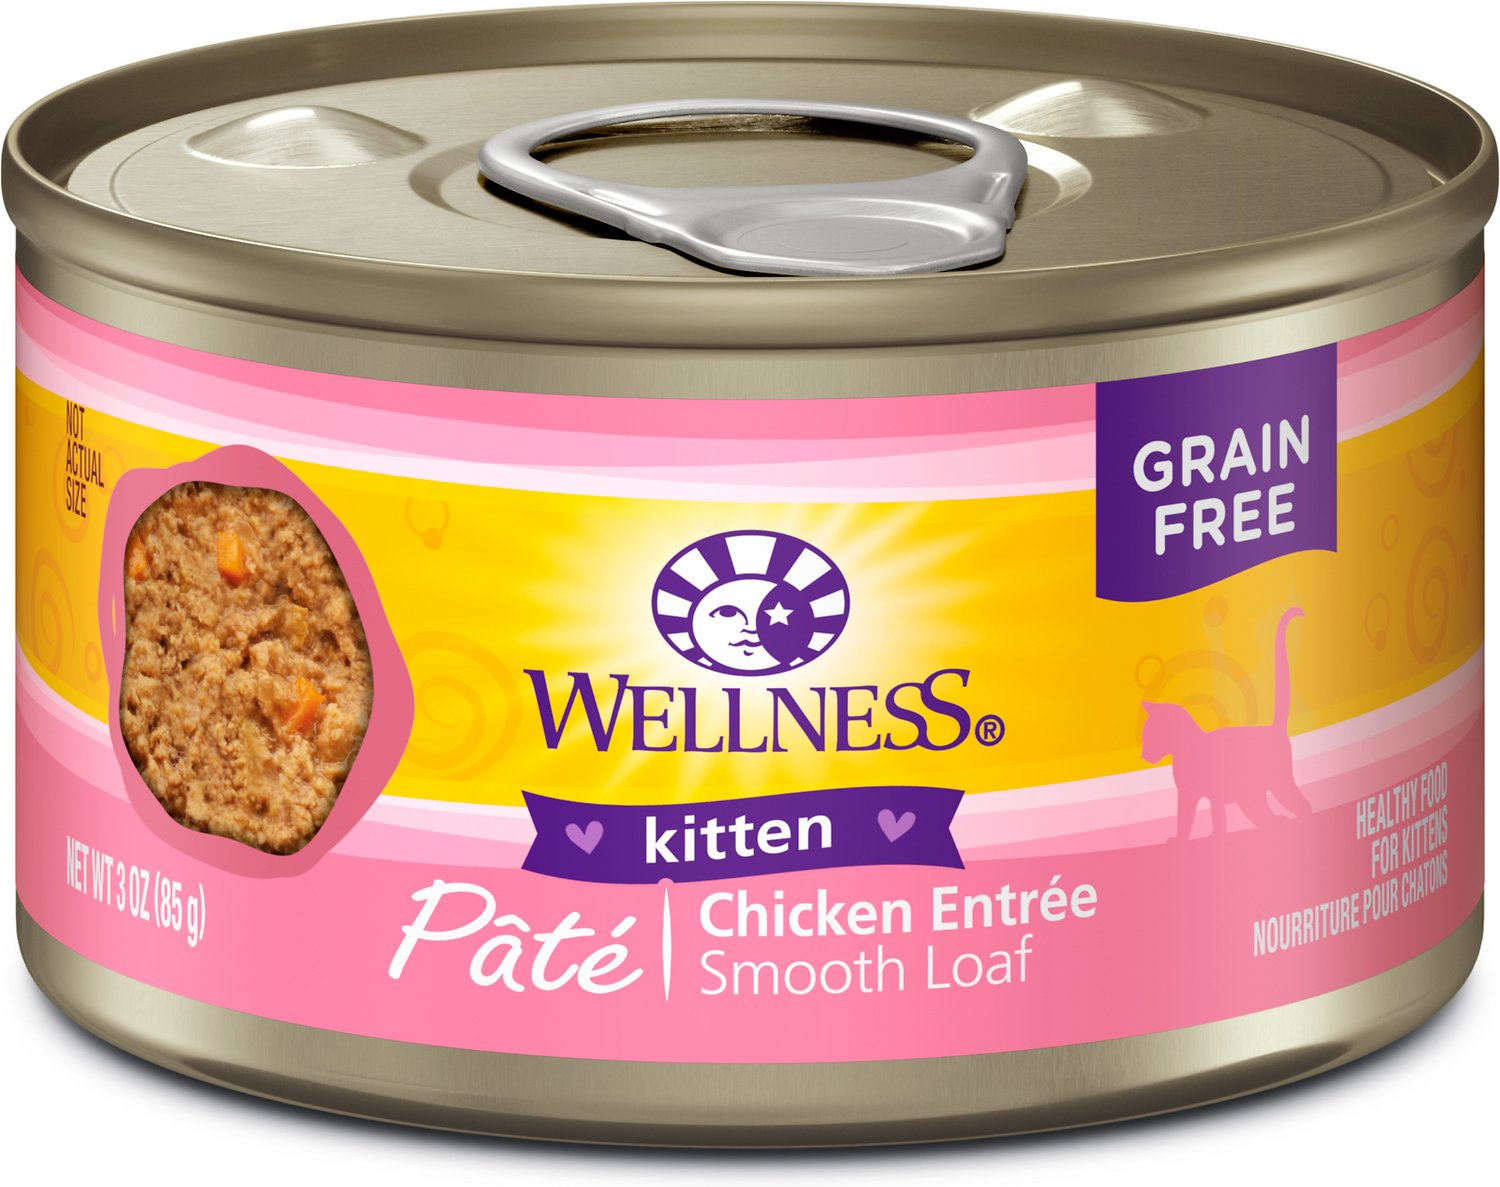 Wellness Complete Health Pate Kitten Formula Grain-Free Canned Cat Food, 3-oz, case of 24